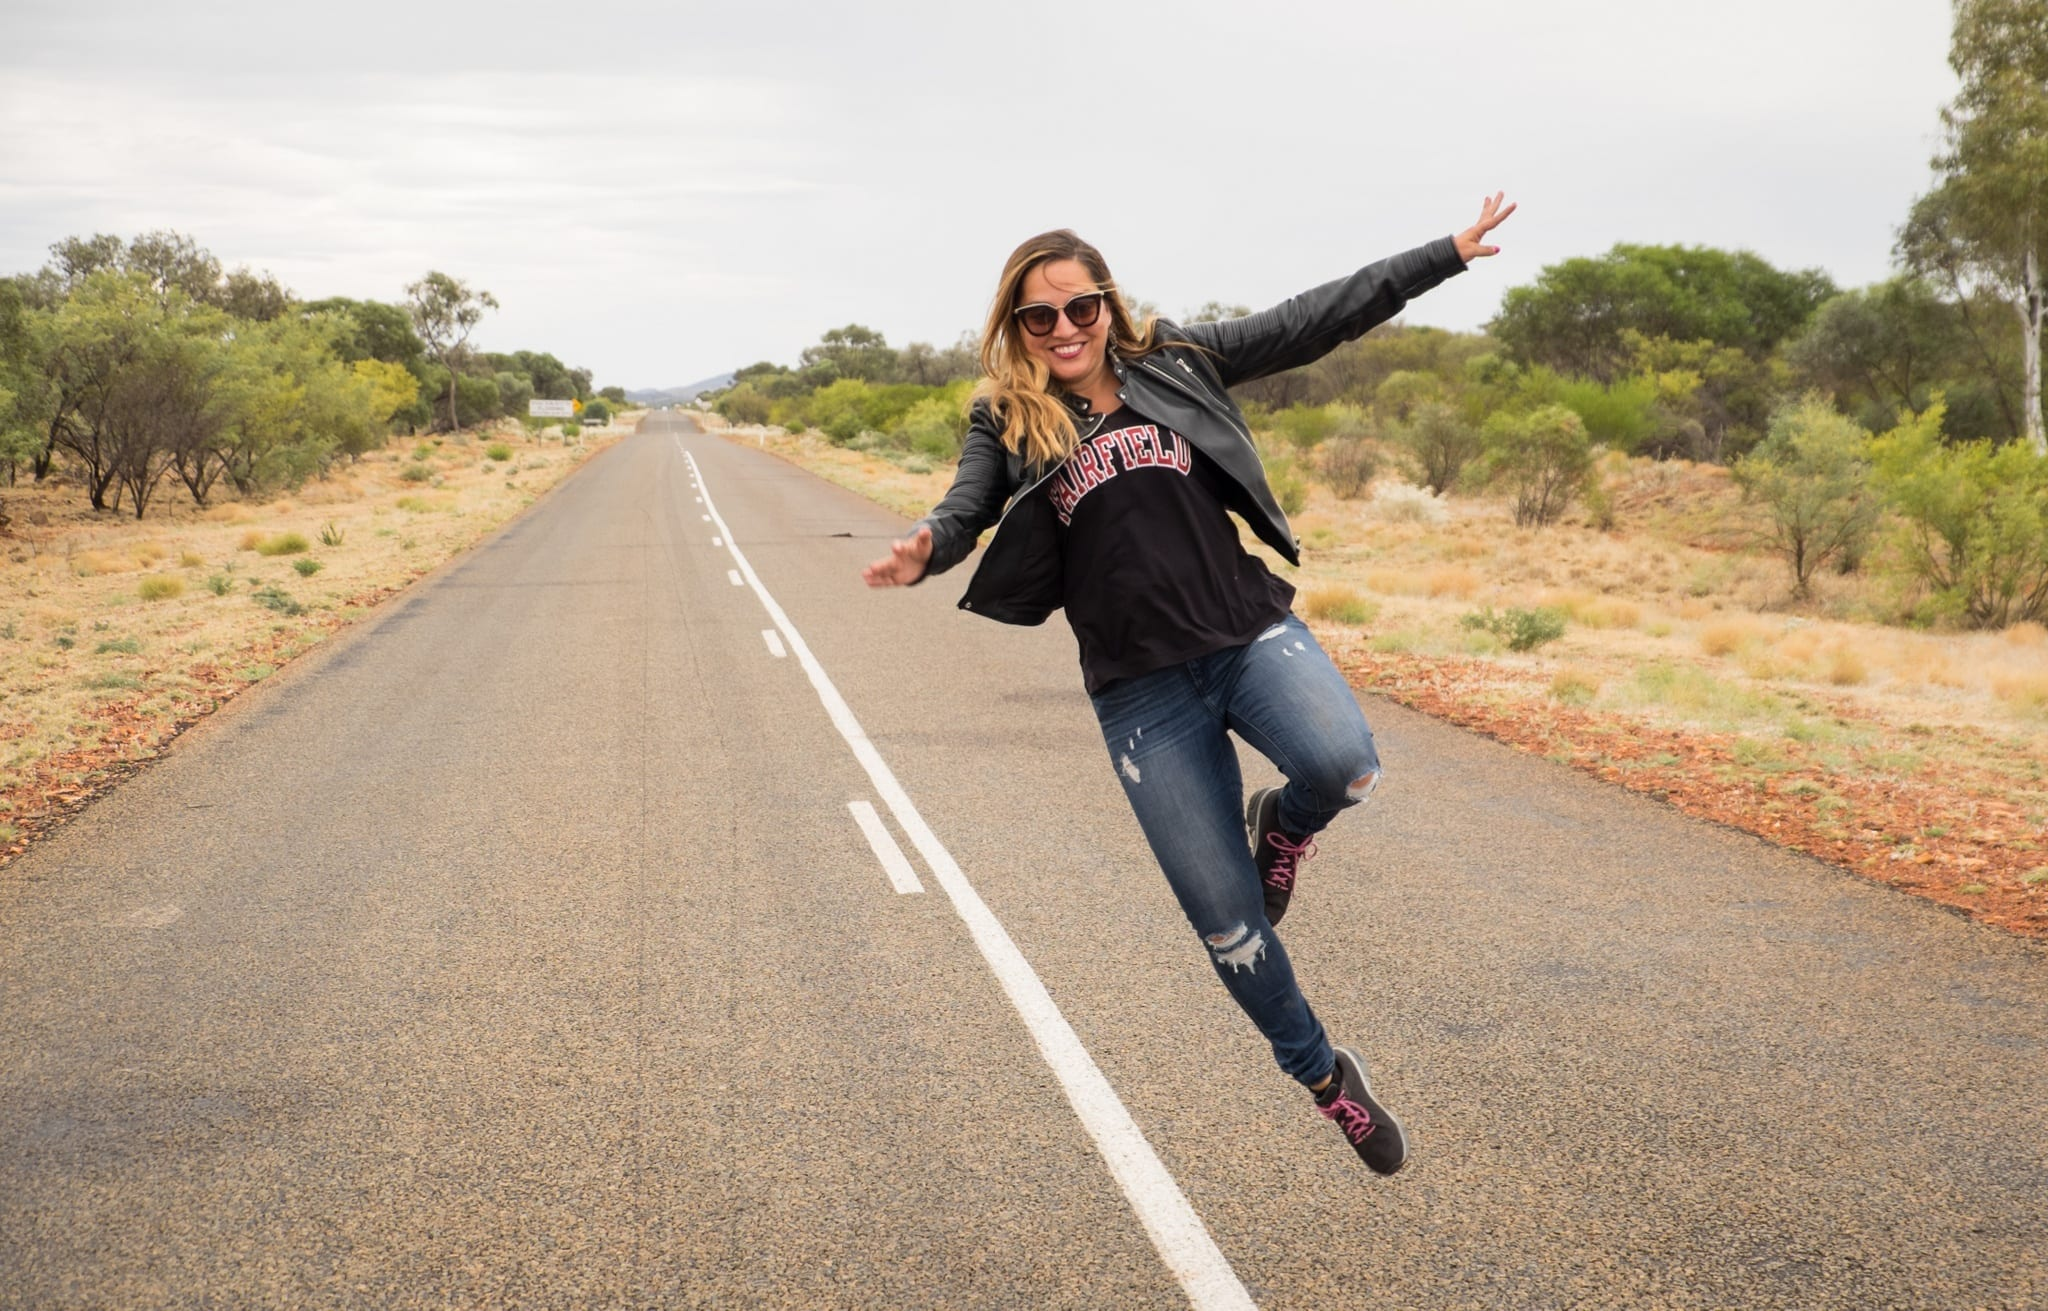 Kate flying in WA